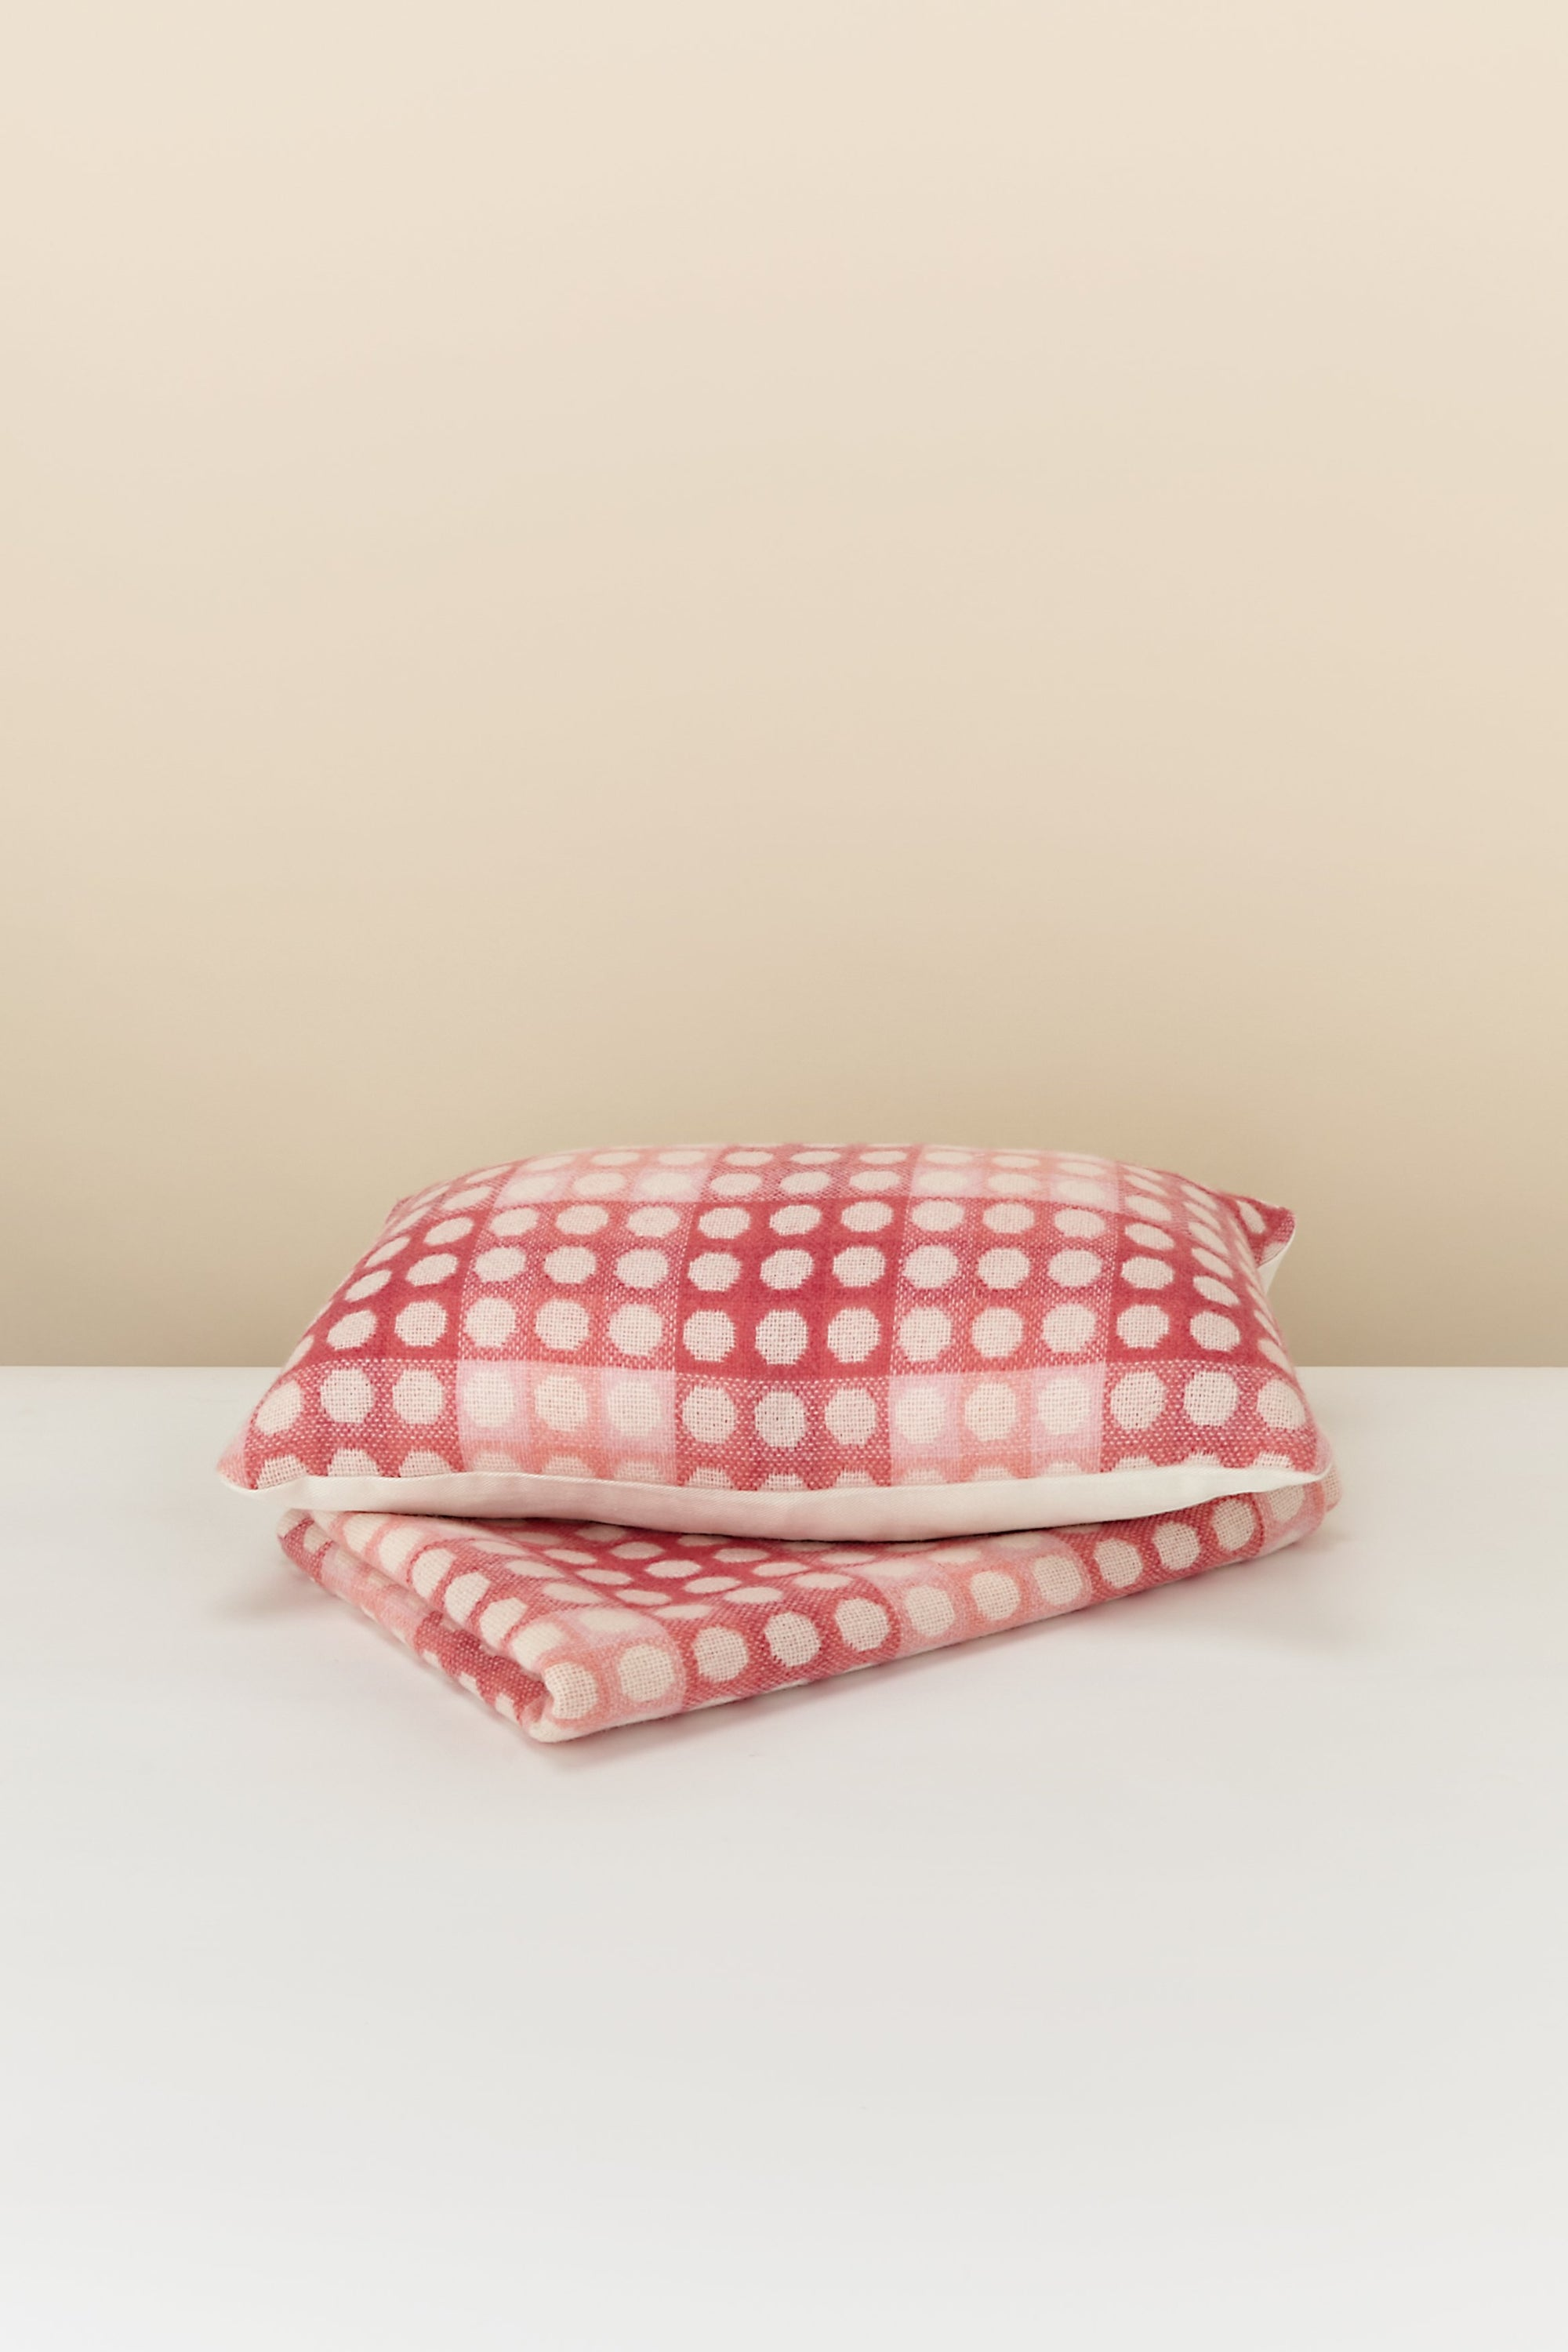 Lee Mathews Baby Cushion and Blanket Set